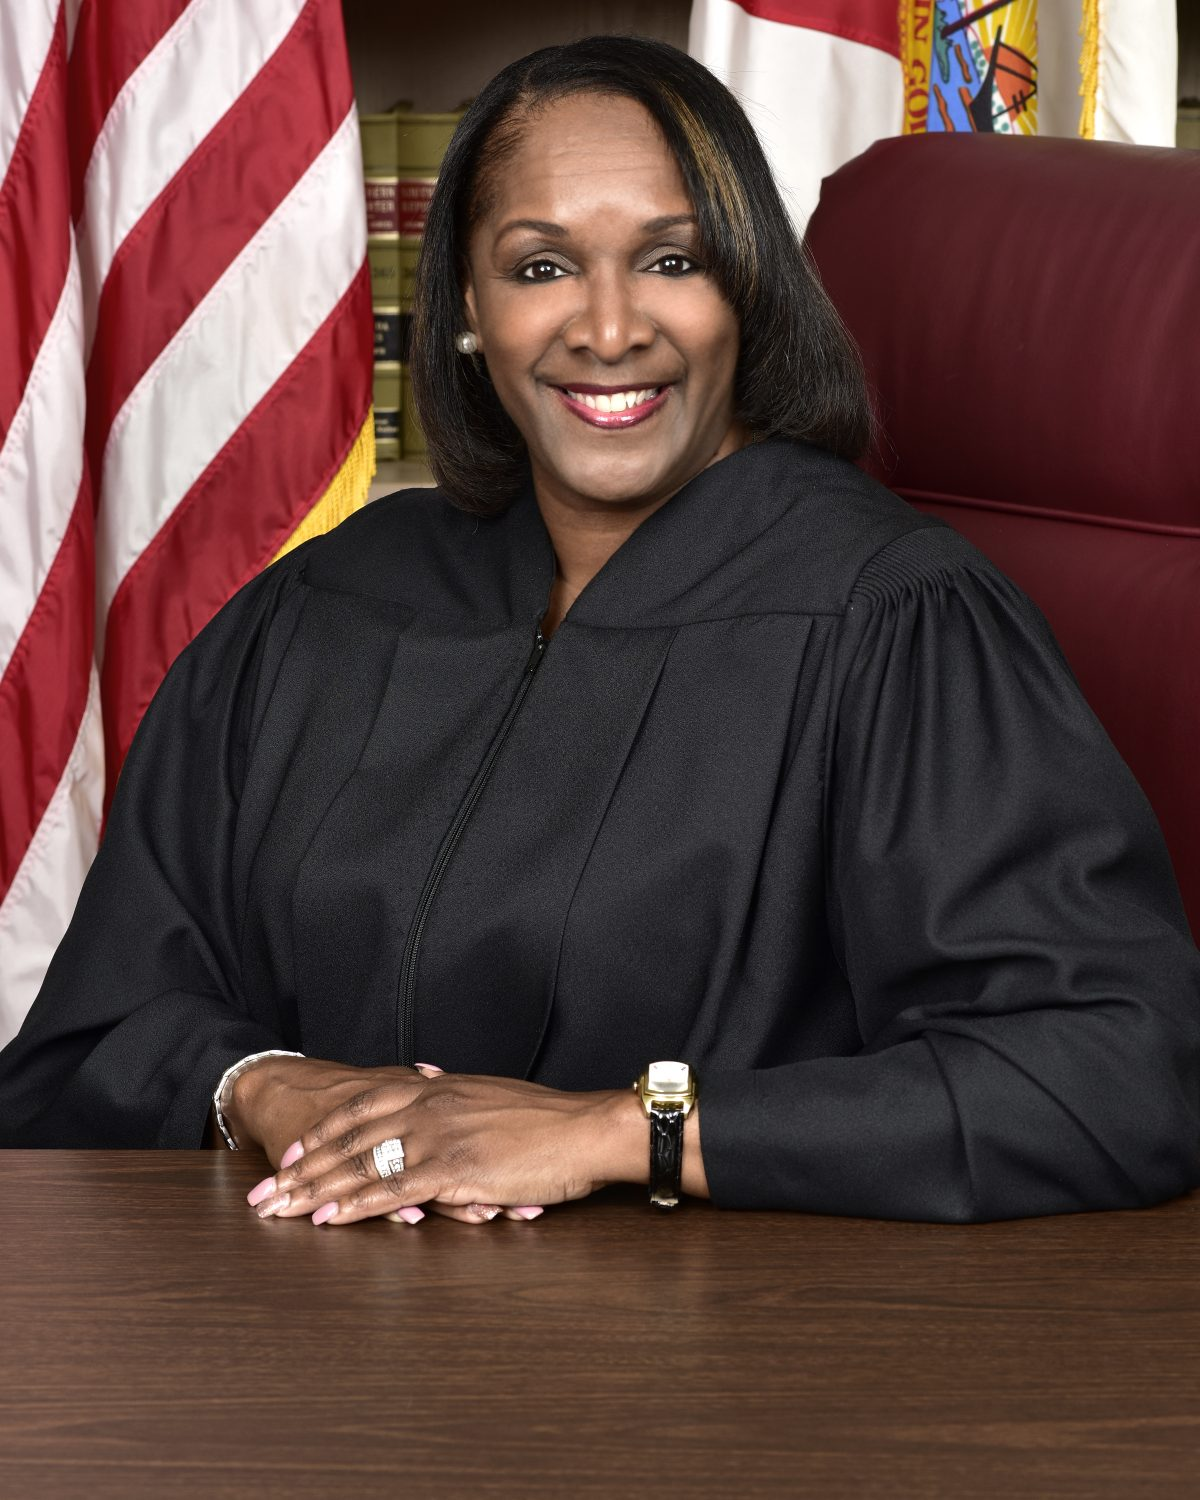 Here We Go Again Another Broward Judge in Trouble Judge Gina Hawkins